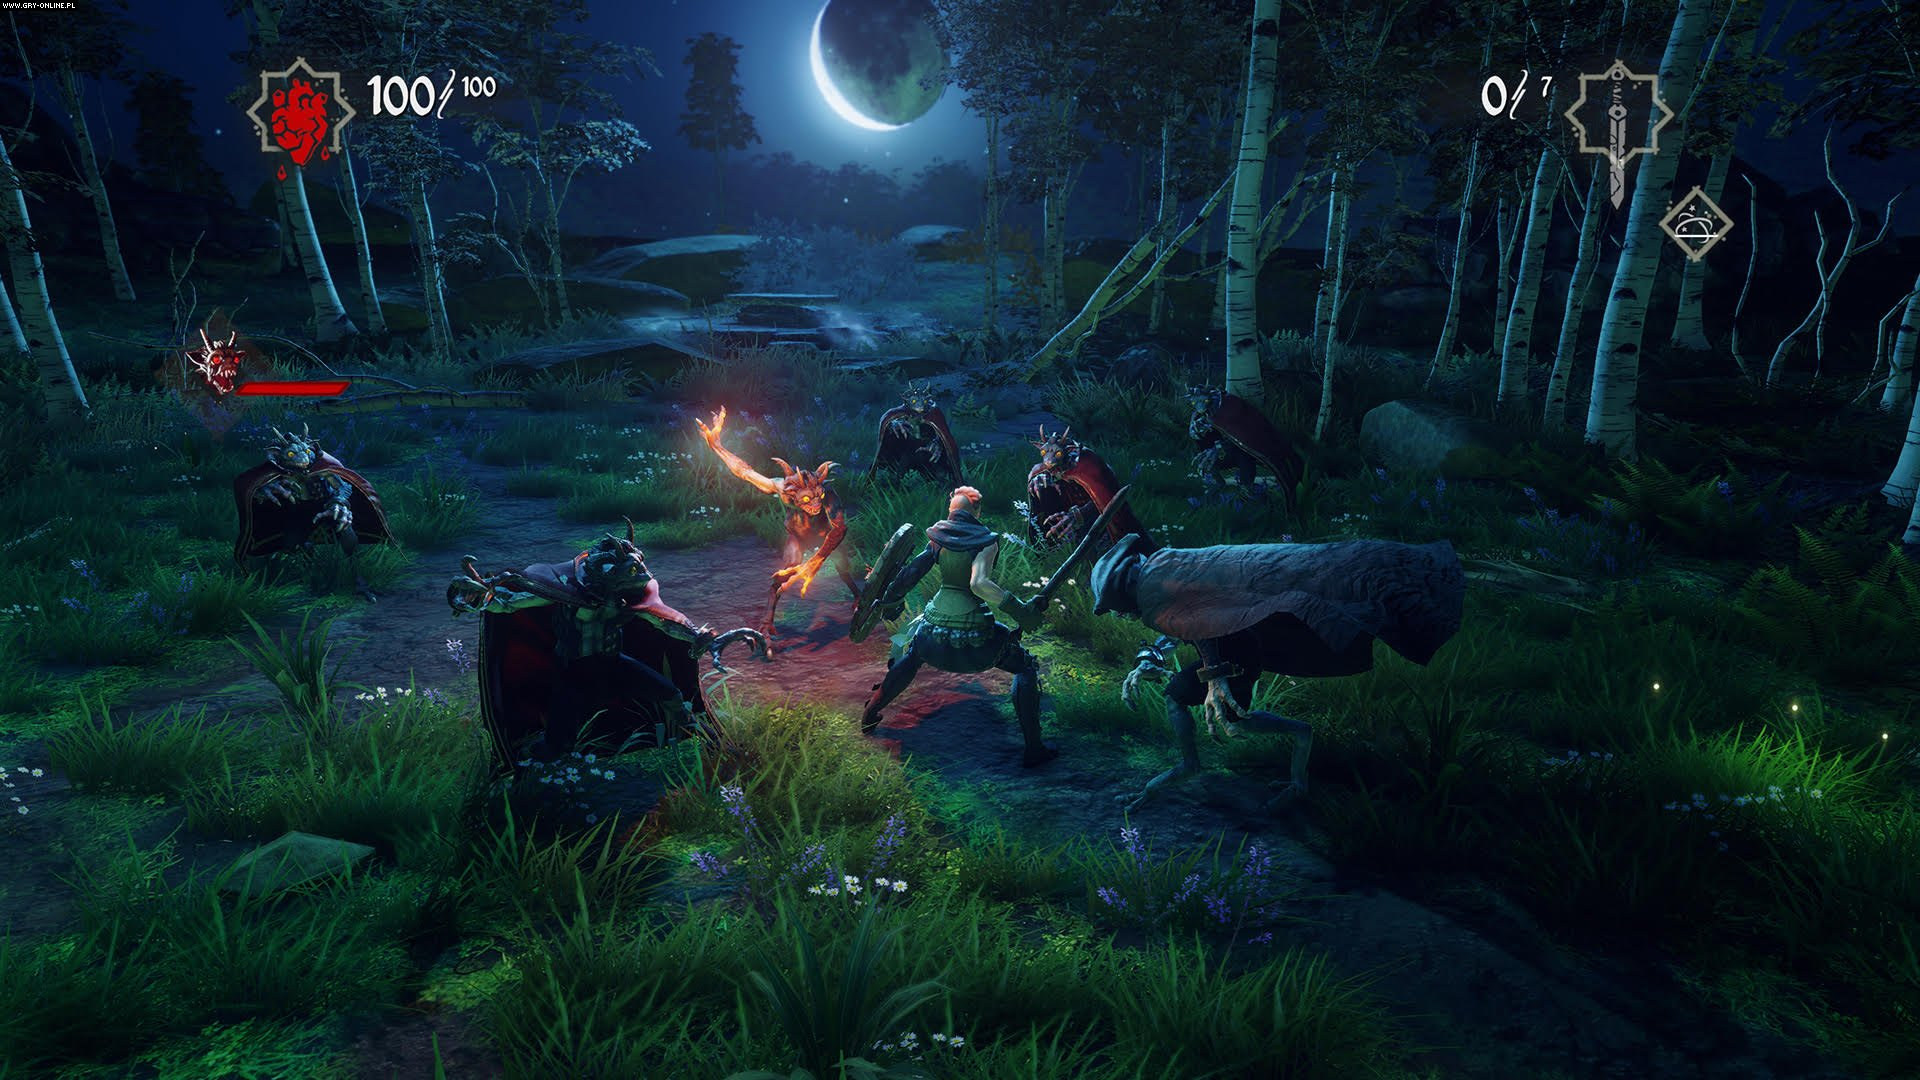 Hand of Fate 2 PC, PS4, XONE, Switch Gry Screen 1/33, Defiant Development